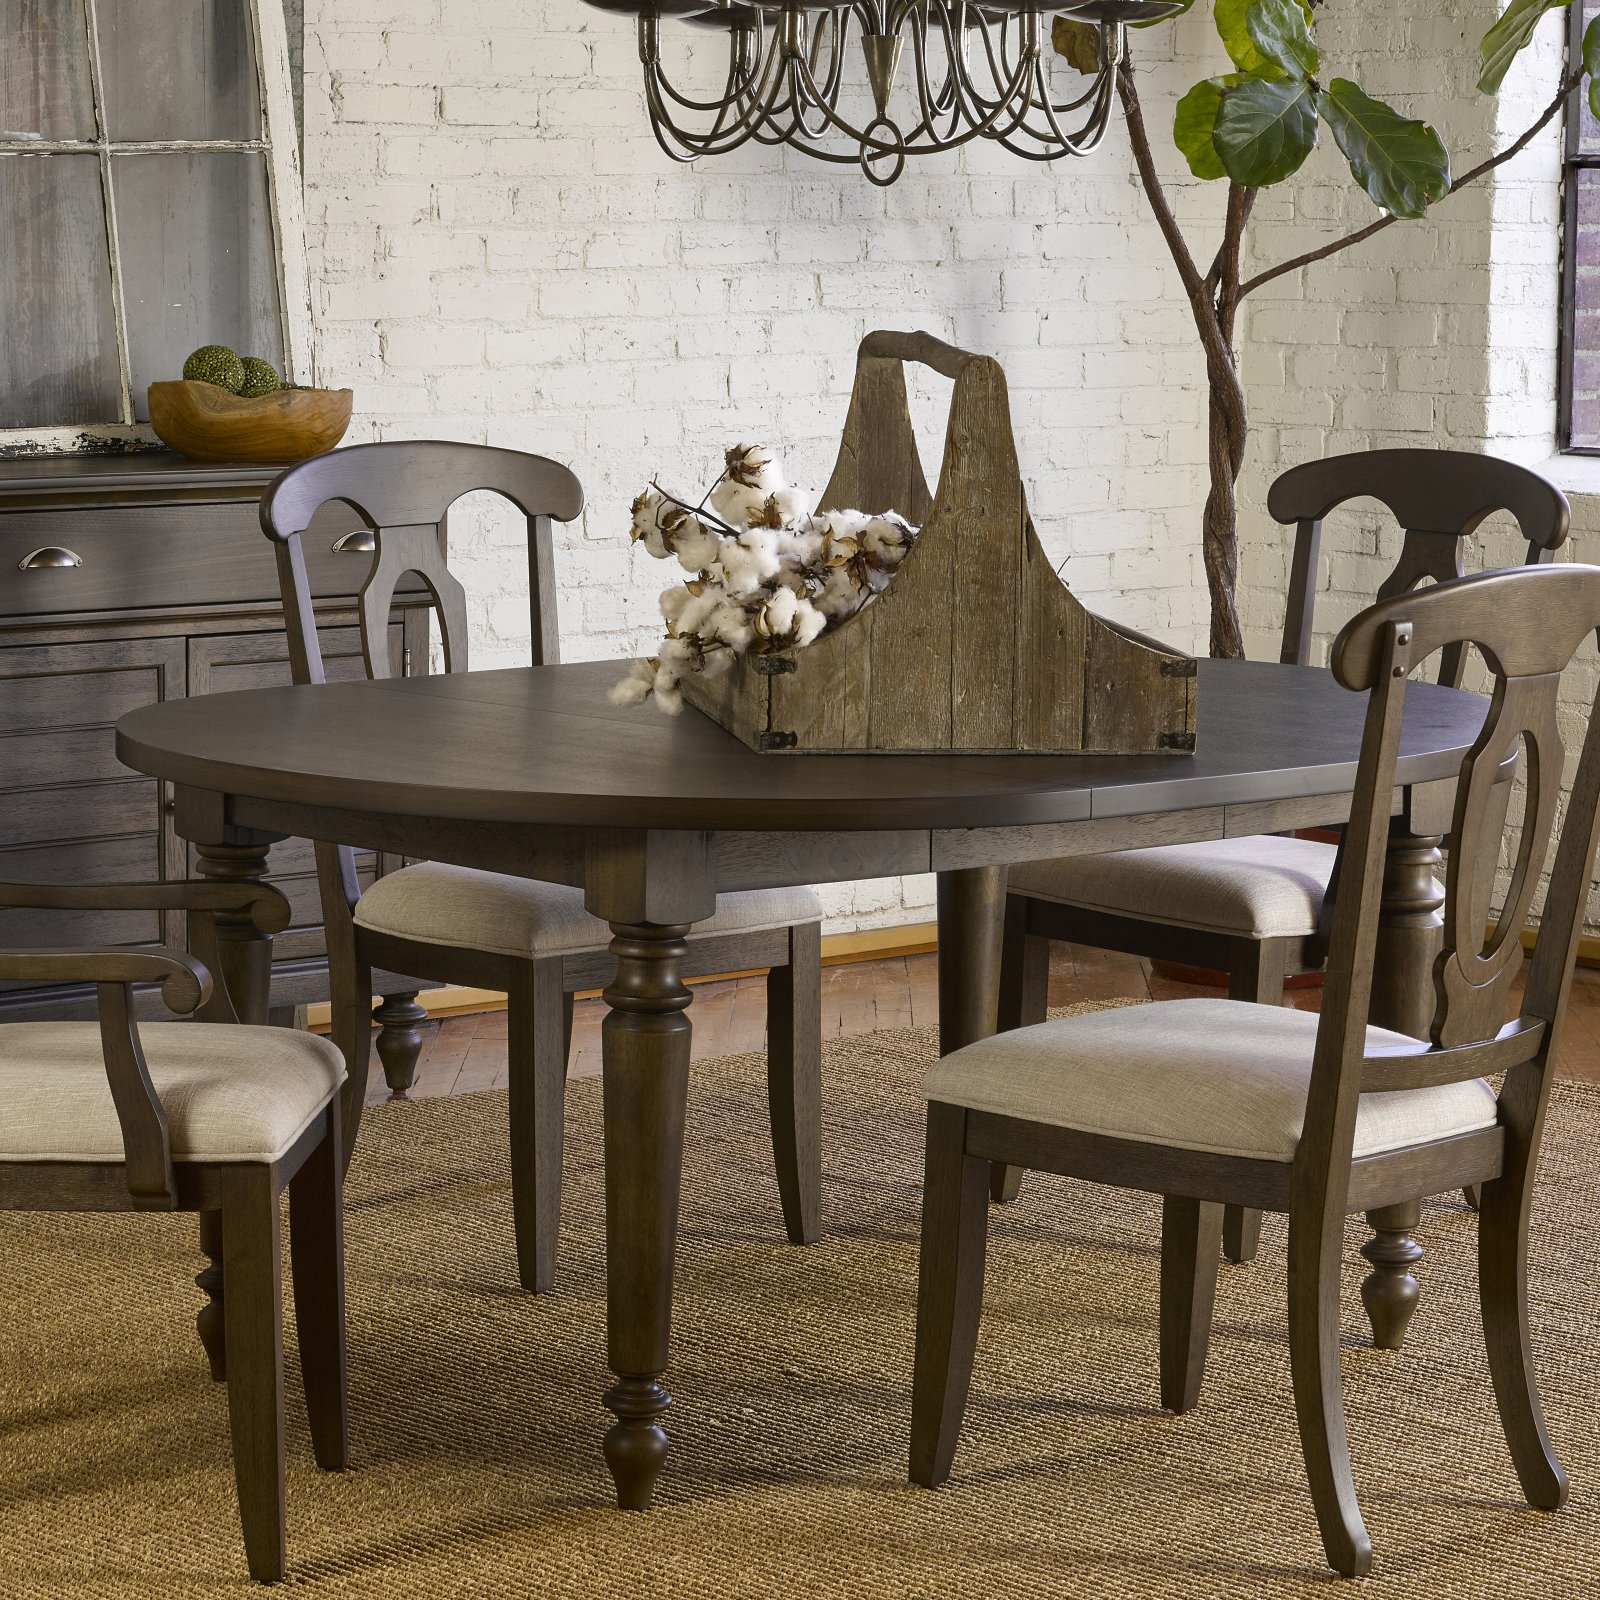 Broyhill Ashgrove 50 In Round Dining Table With Extension Walmart Com Walmart Com